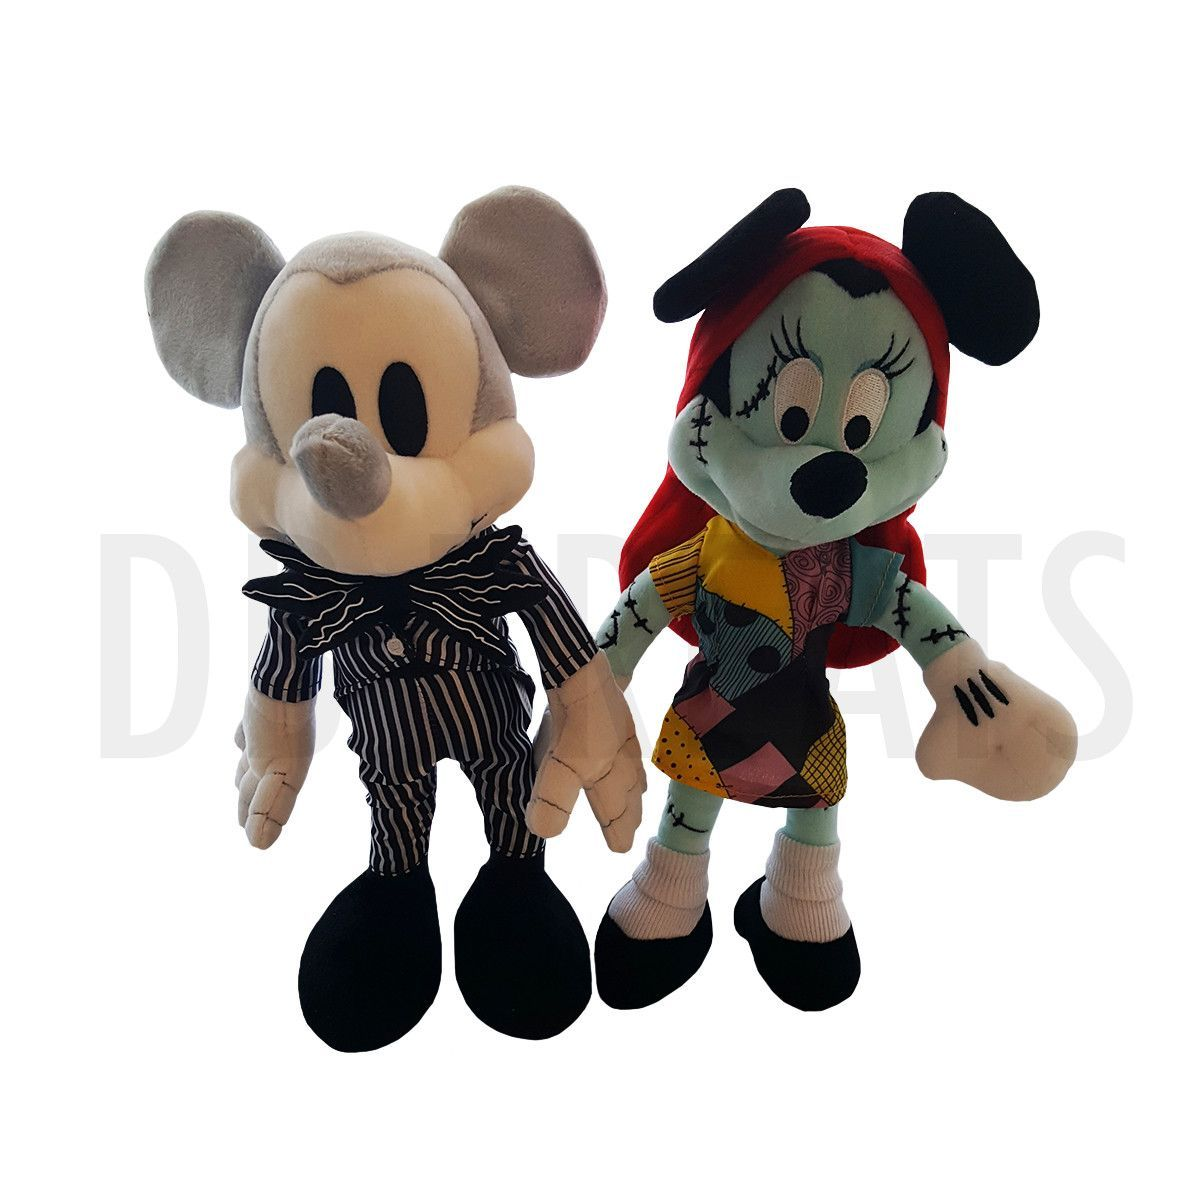 Disney Parks The Nightmare Before Christmas Mickey Mouse